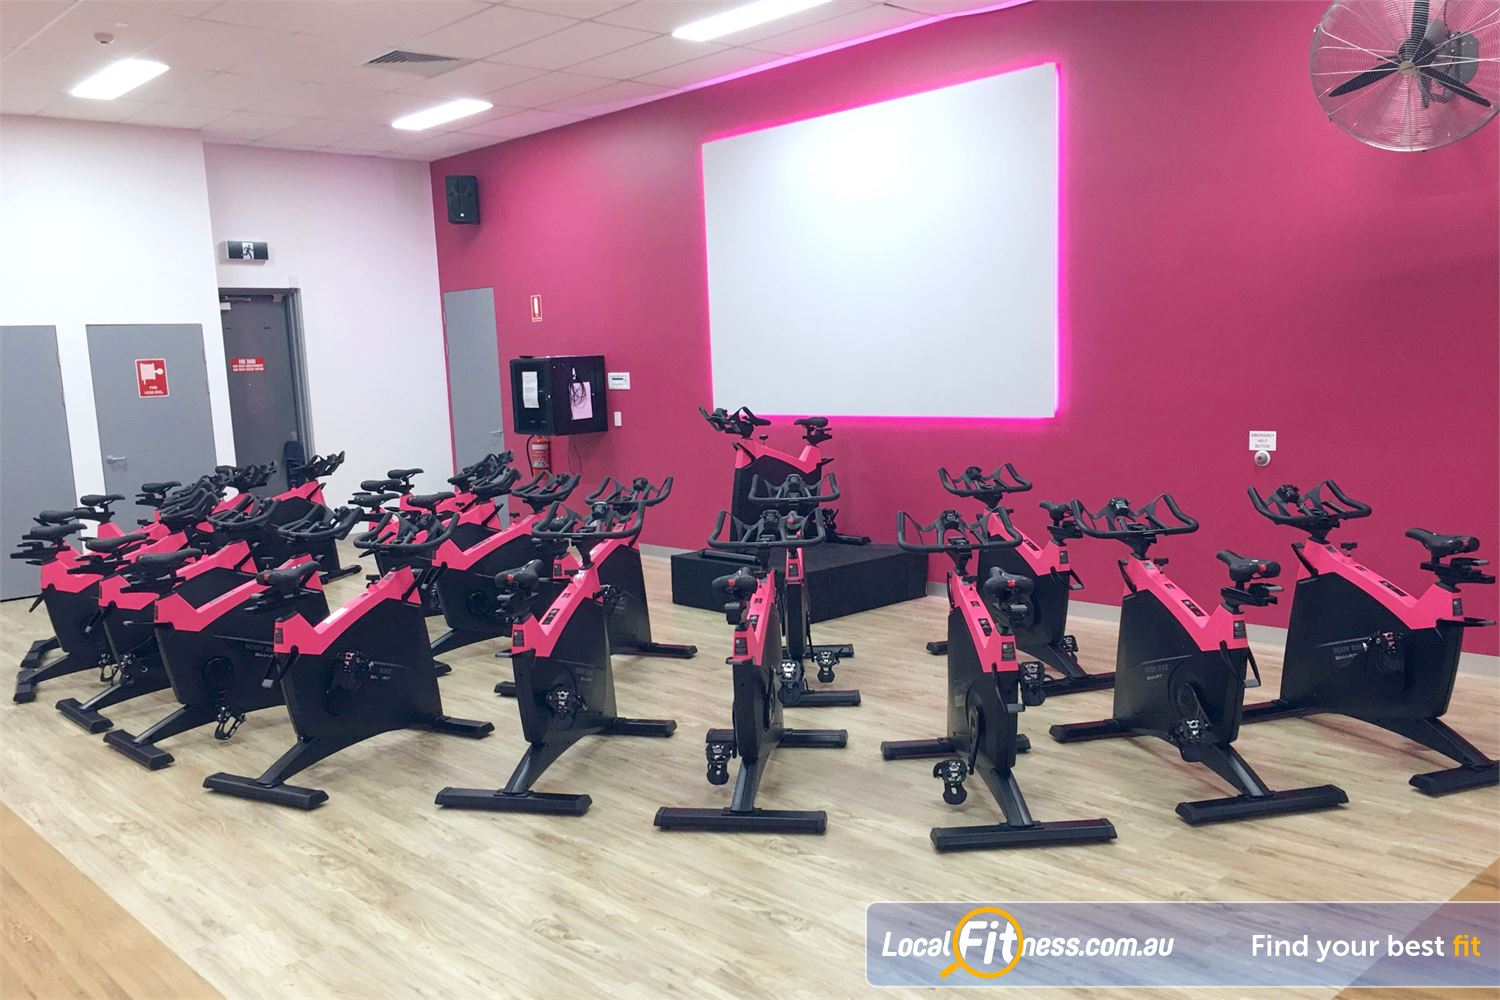 Fernwood Fitness Robina The dedicated Robina spin cycle studio with virtual cycle classes.